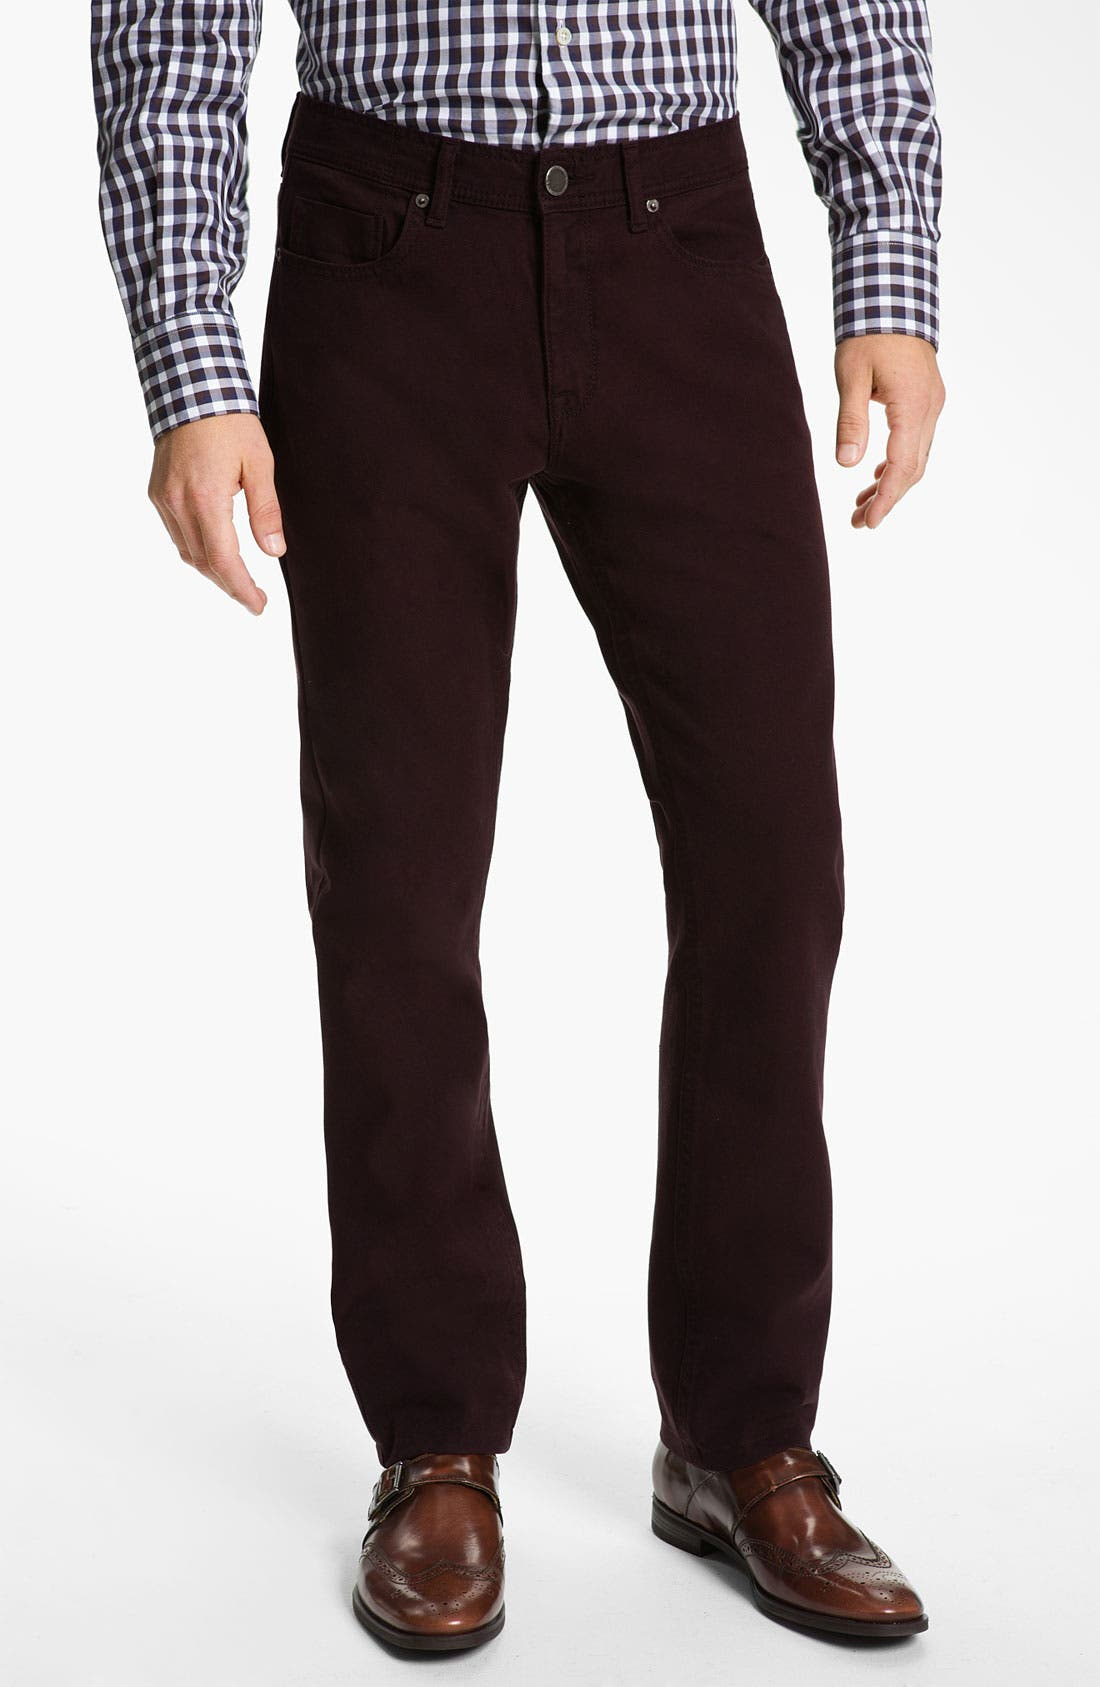 Main Image - DL1961 'Vince' Straight Leg Jeans (Redwood) (Online Only)